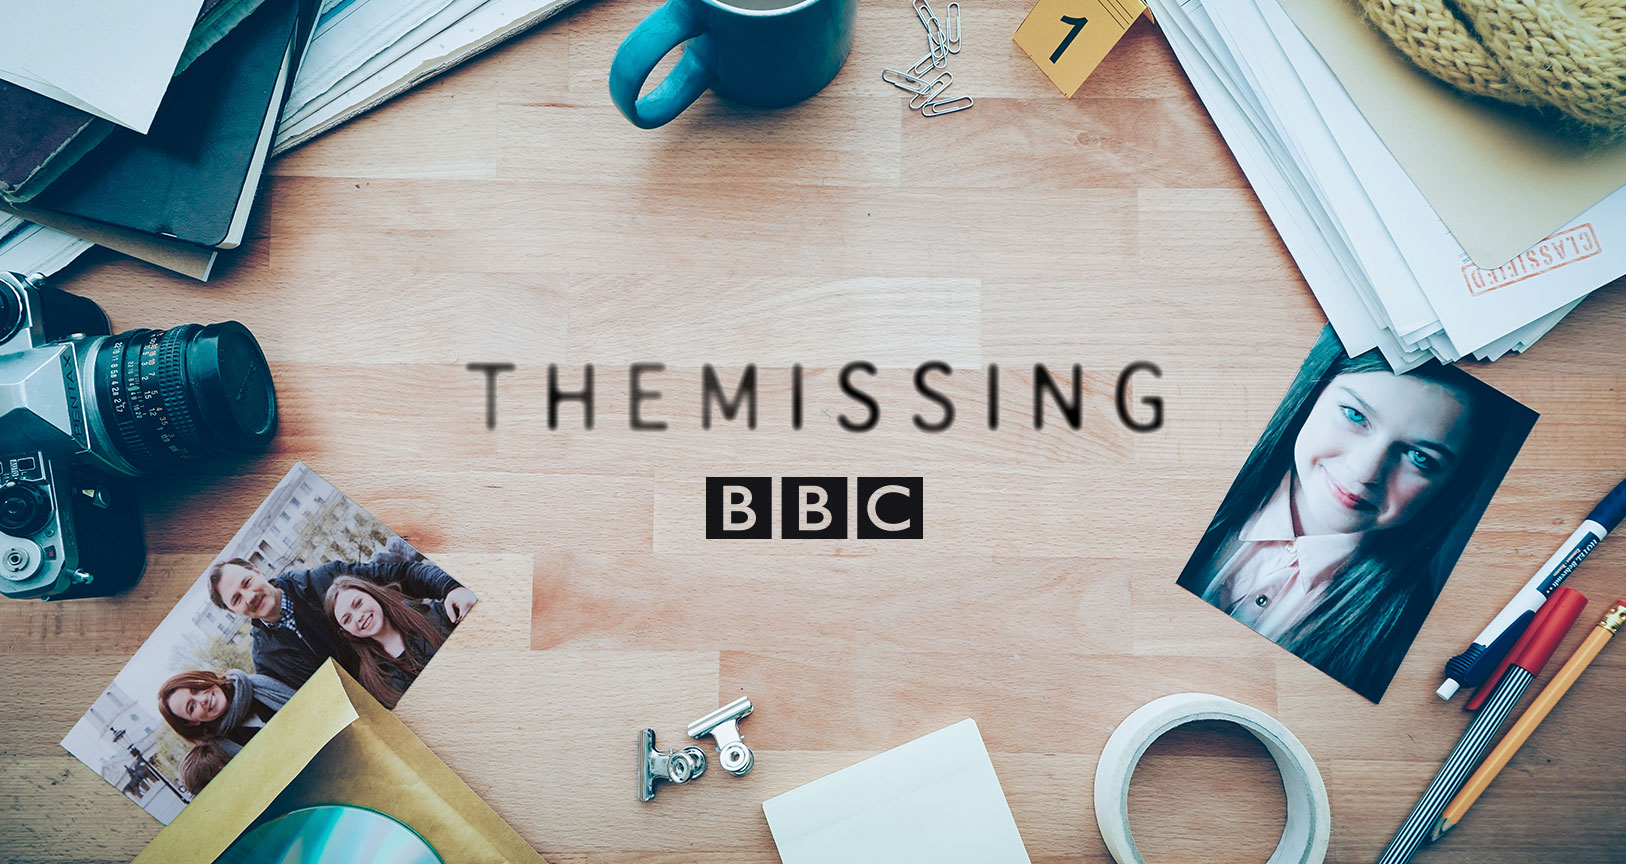 BBC - The Missing